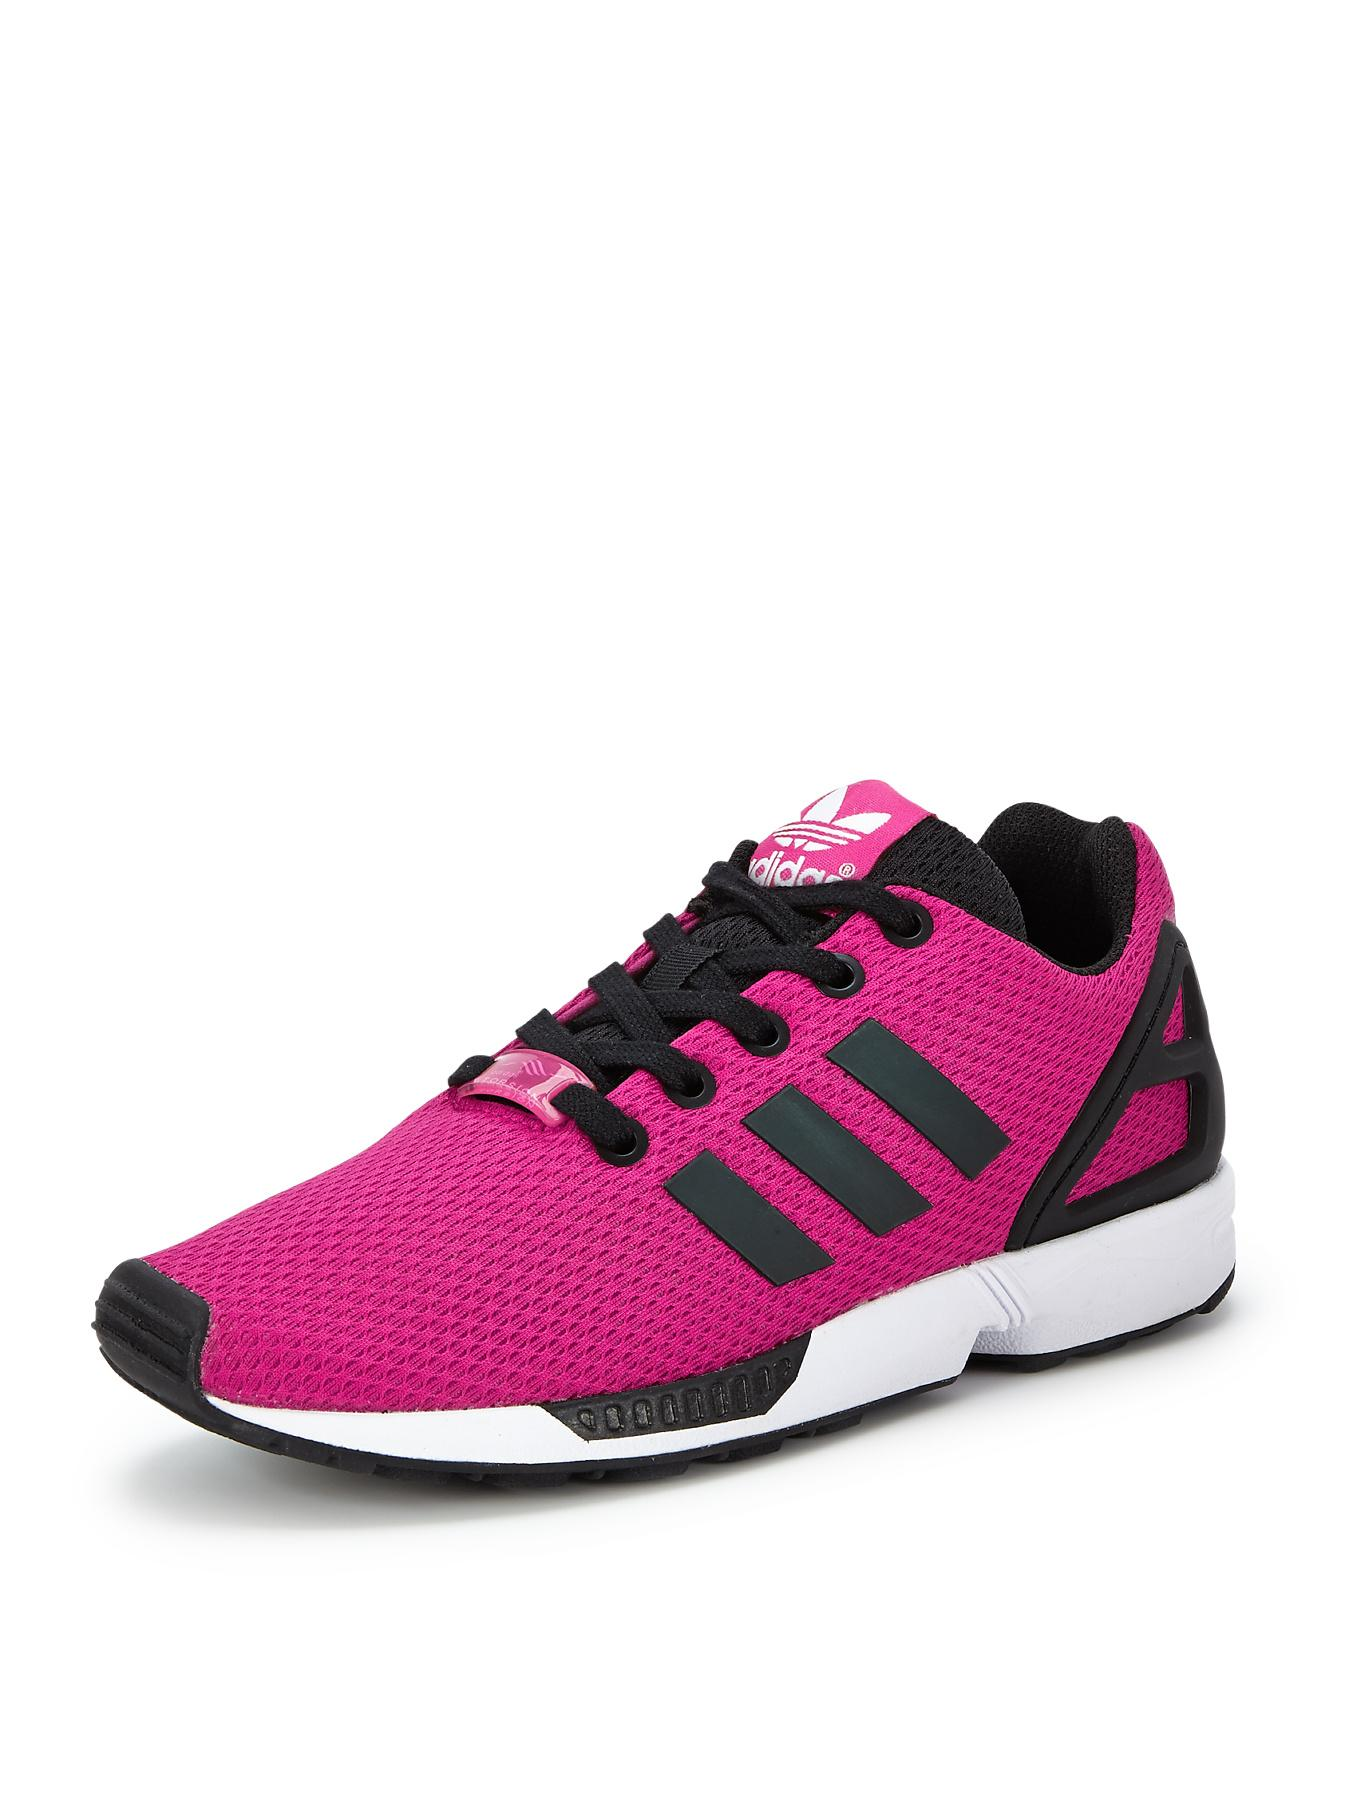 adidas Originals ZX Flux Junior Girls Trainers - Pink, Pink